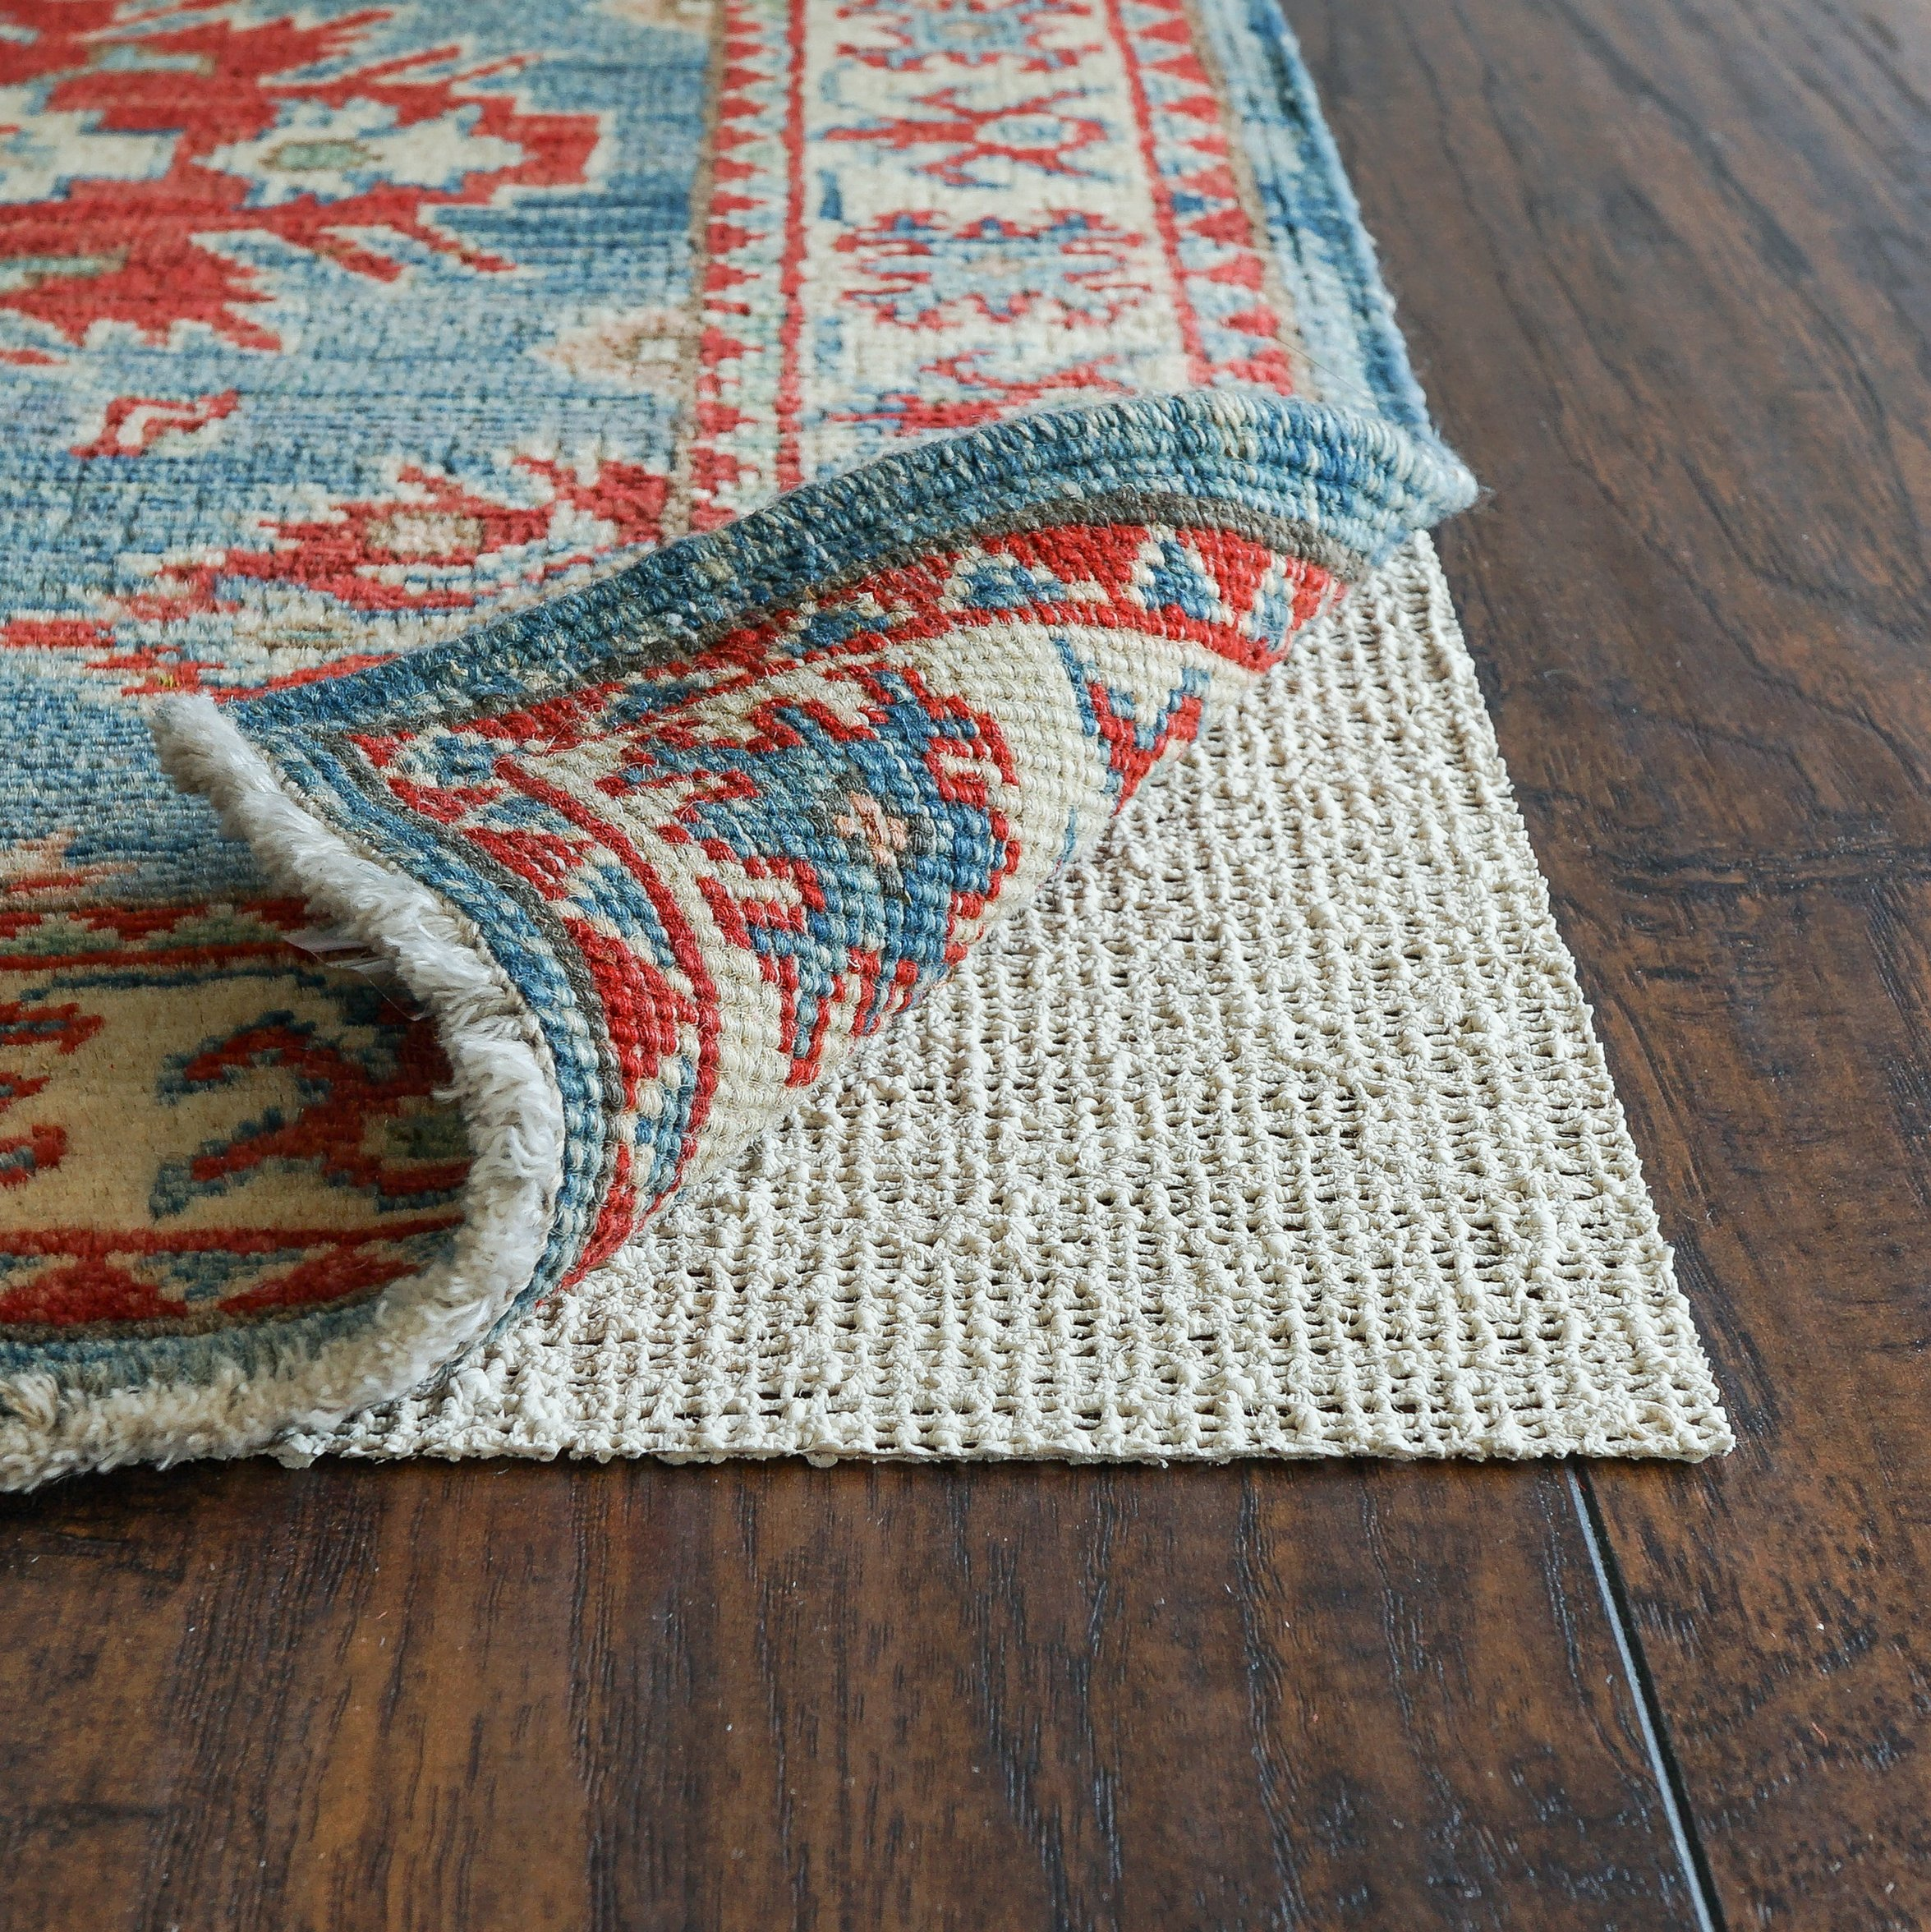 Rug Pad USA, Nature's Grip, Eco-Friendly Jute & Natural Rubber Non-Slip Rug Pads, 2' x 3'